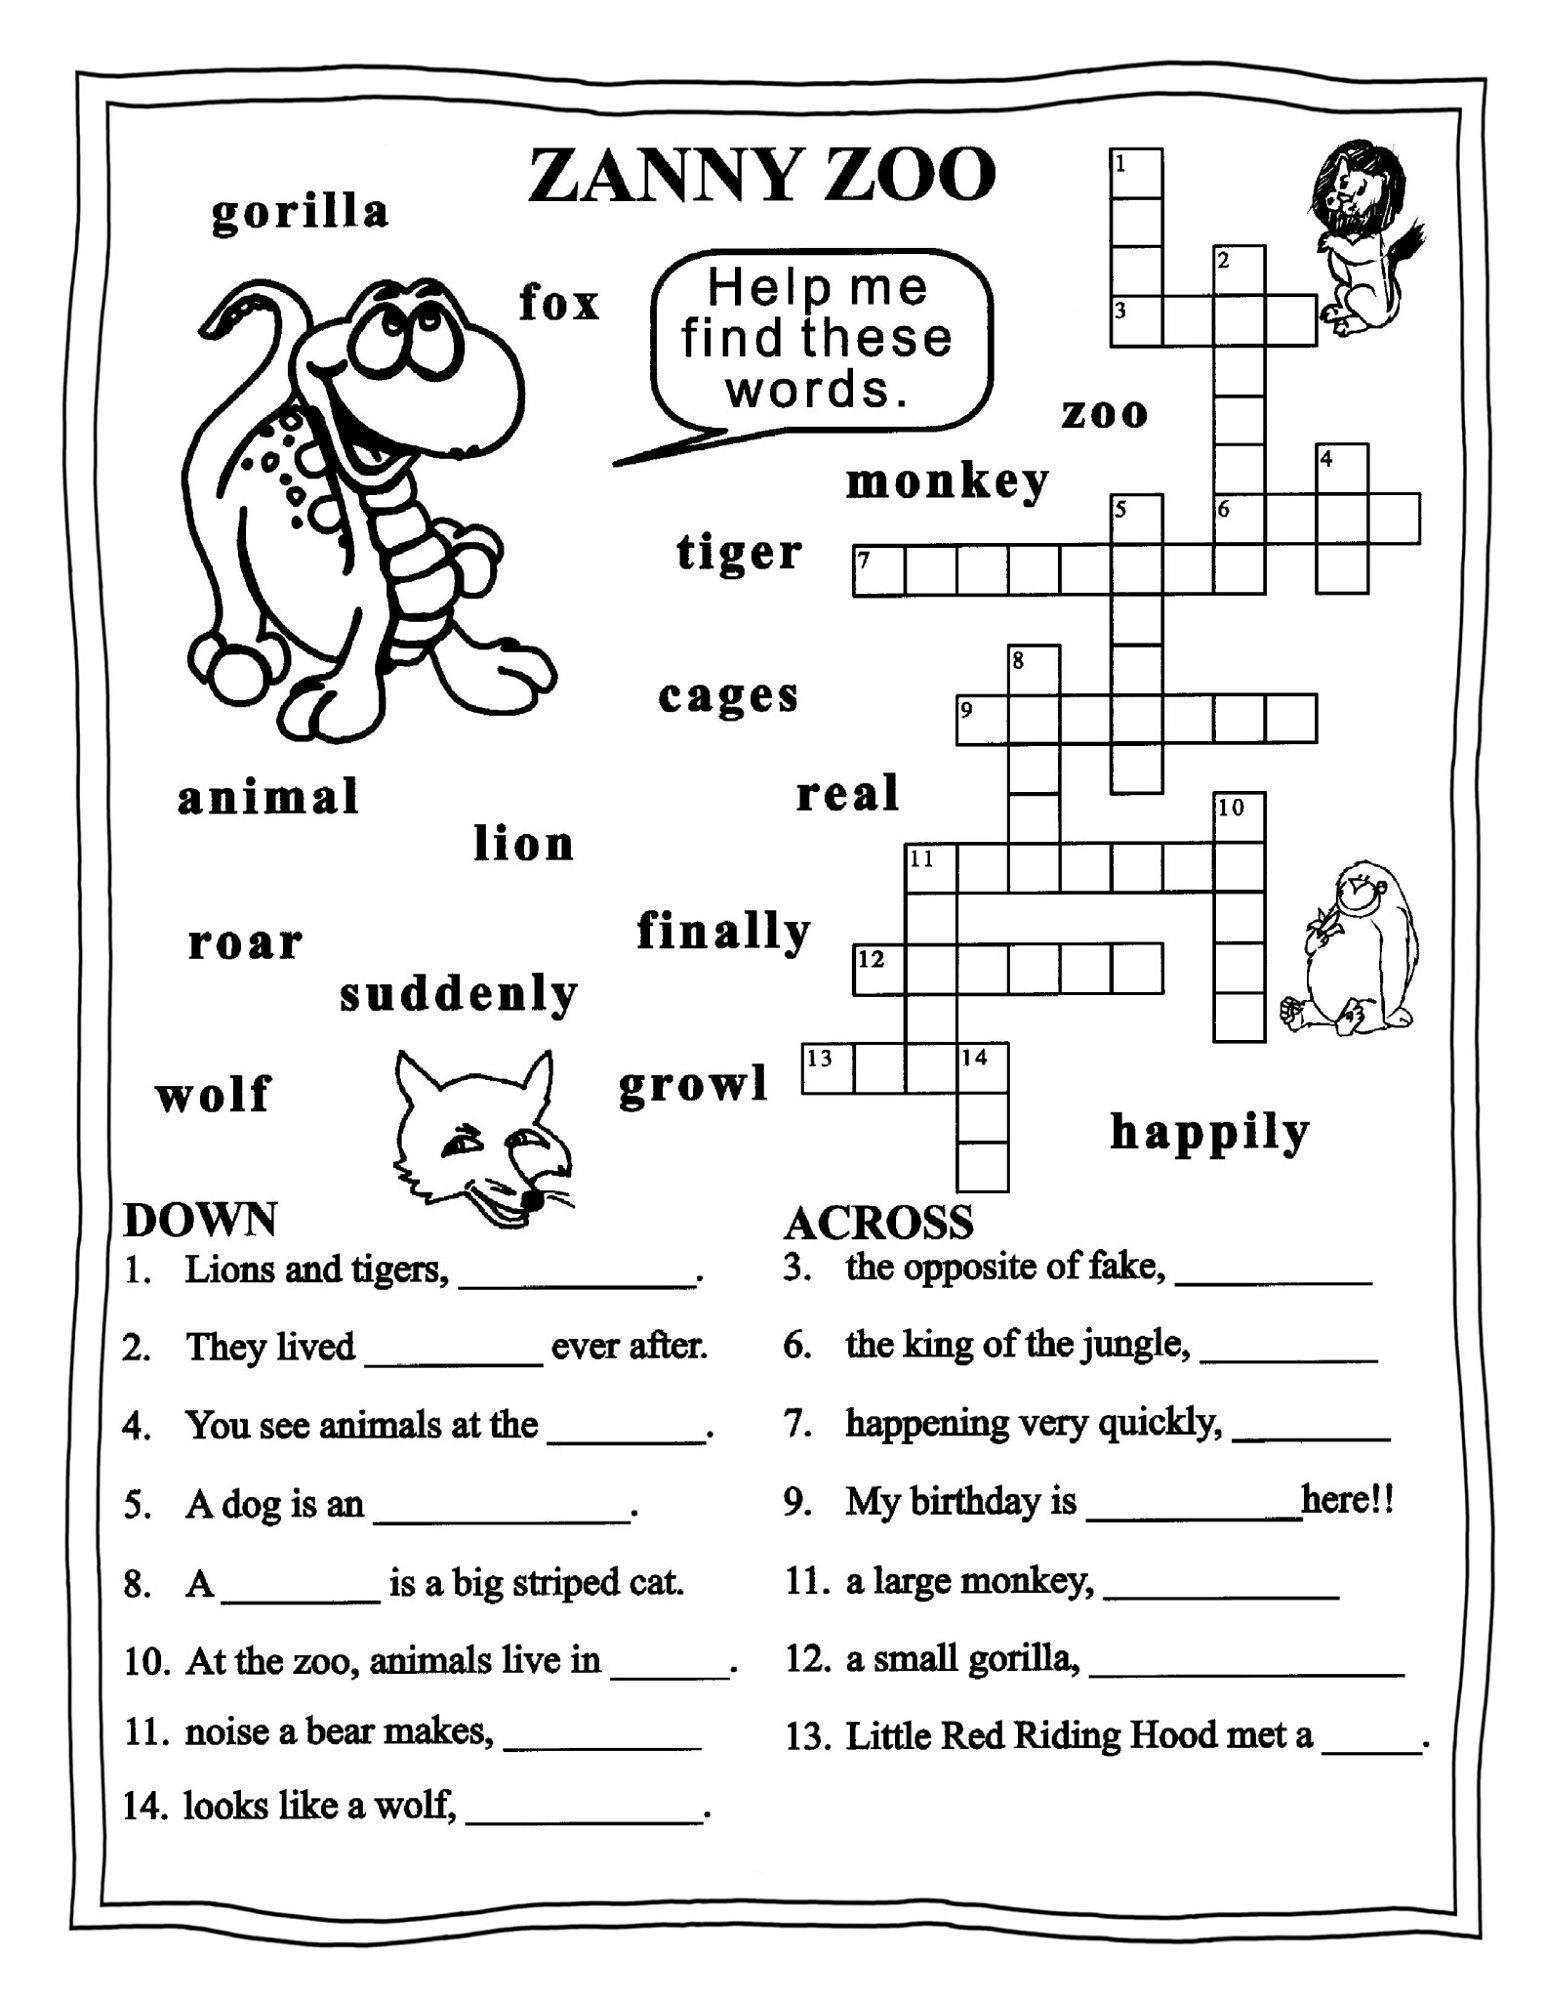 Worksheets for Grade 3 English | Learning Printable | Educative ...